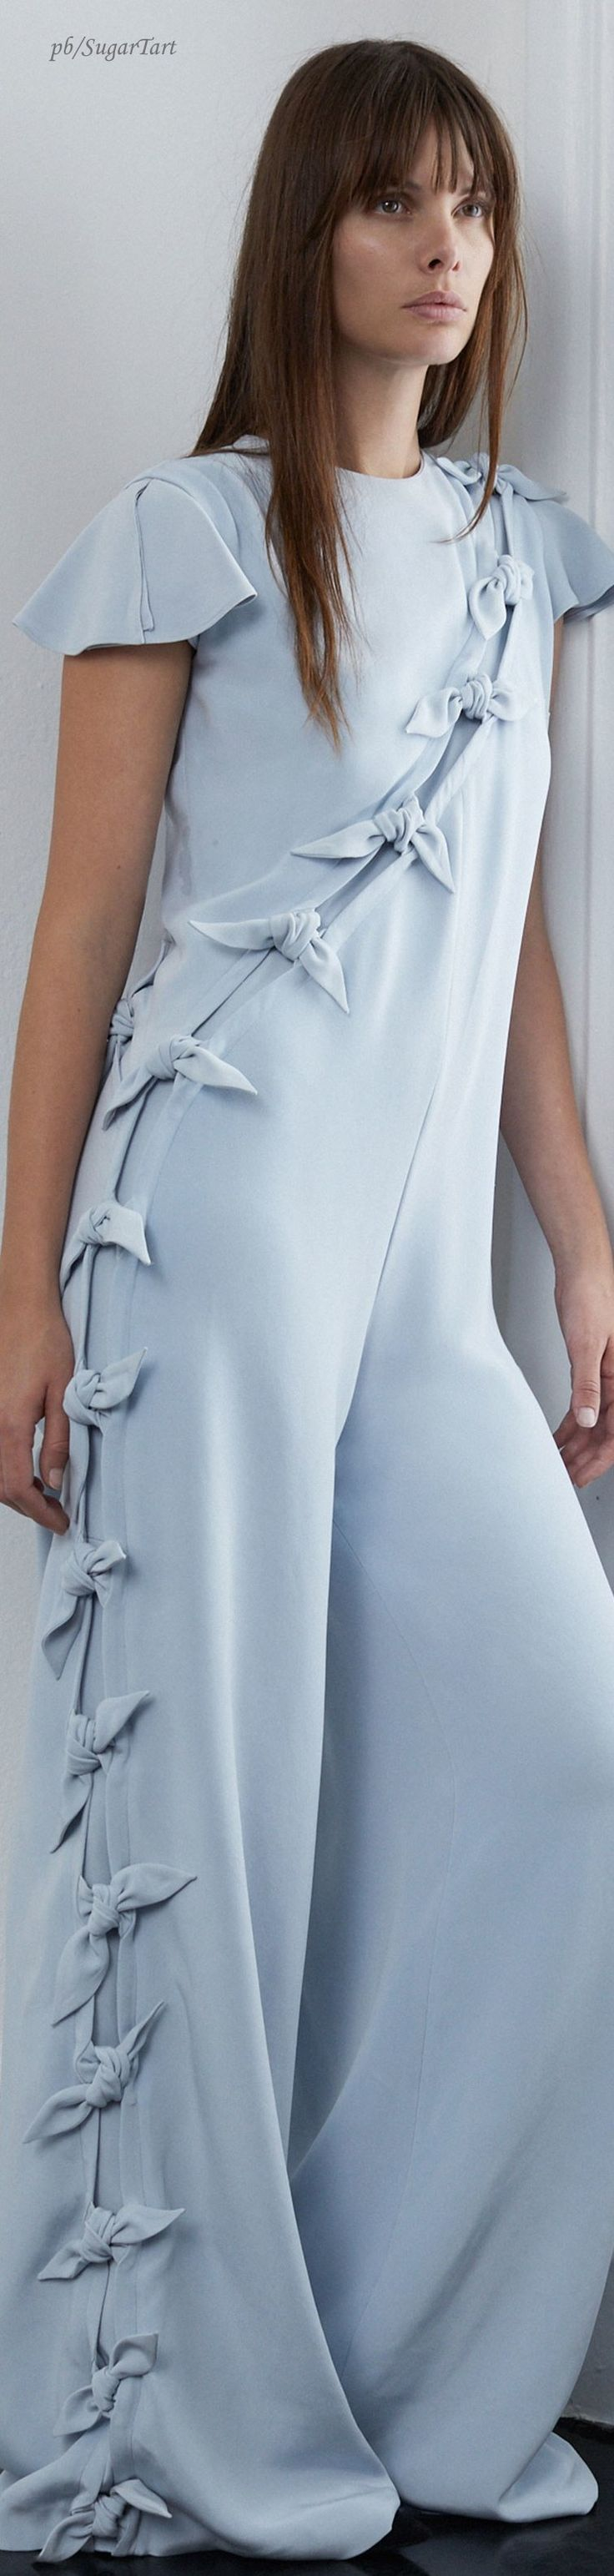 best my tie images on pinterest high fashion